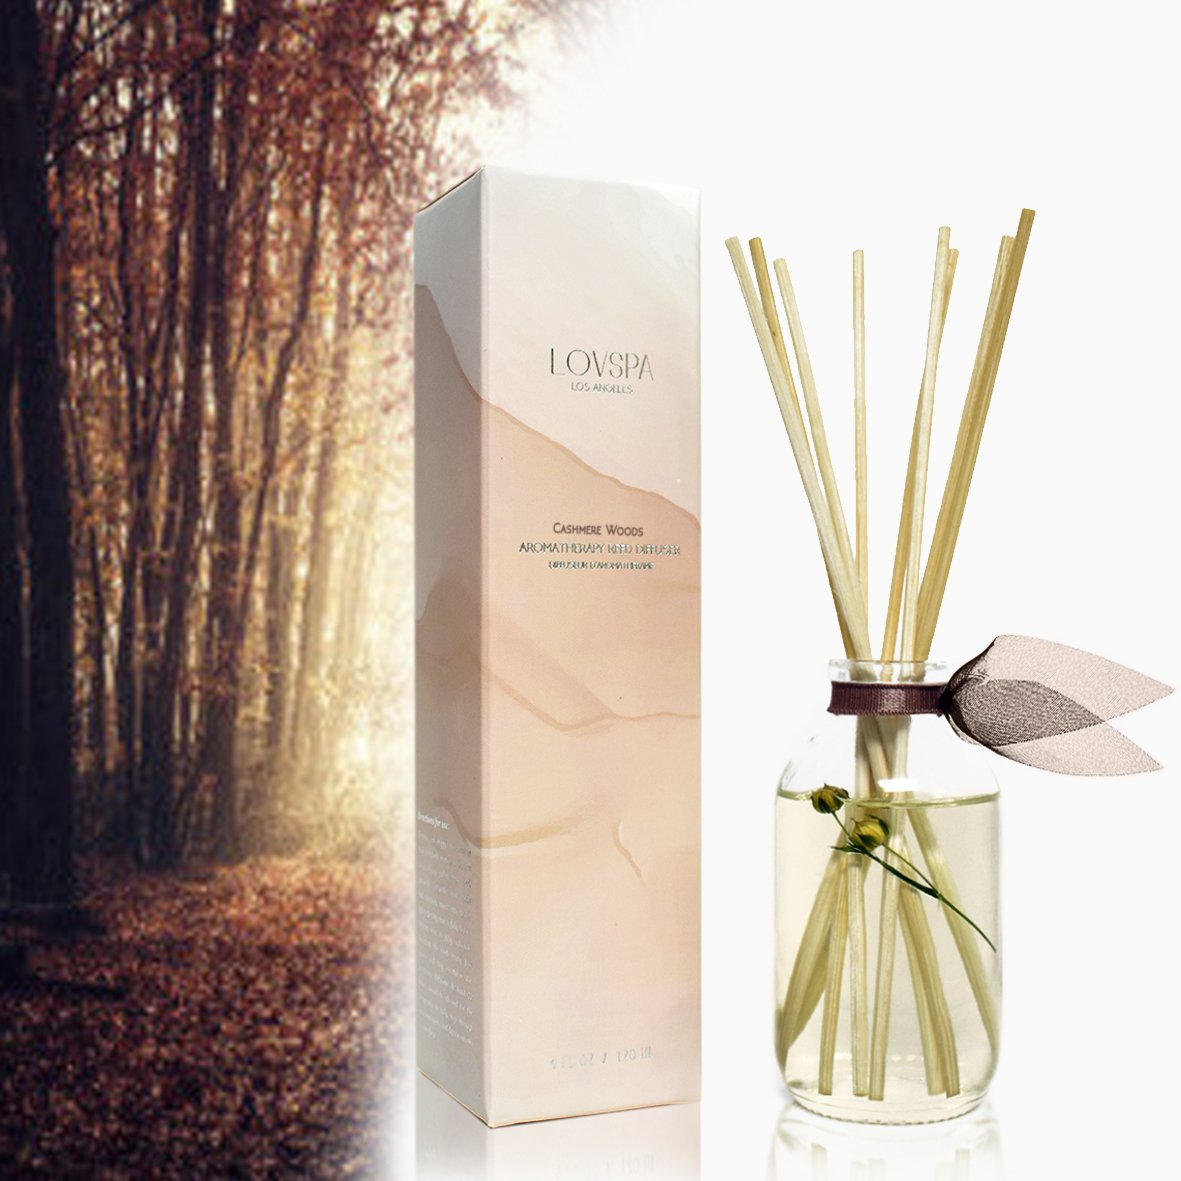 LOVSPA Cashmere Woods Reed Diffuser | Precious Woods & Sensual Amber are Blended with Soft Mimosa, Vanilla Musk, Apricot Nectar and Juicy Berry by LOVSPA (Image #1)